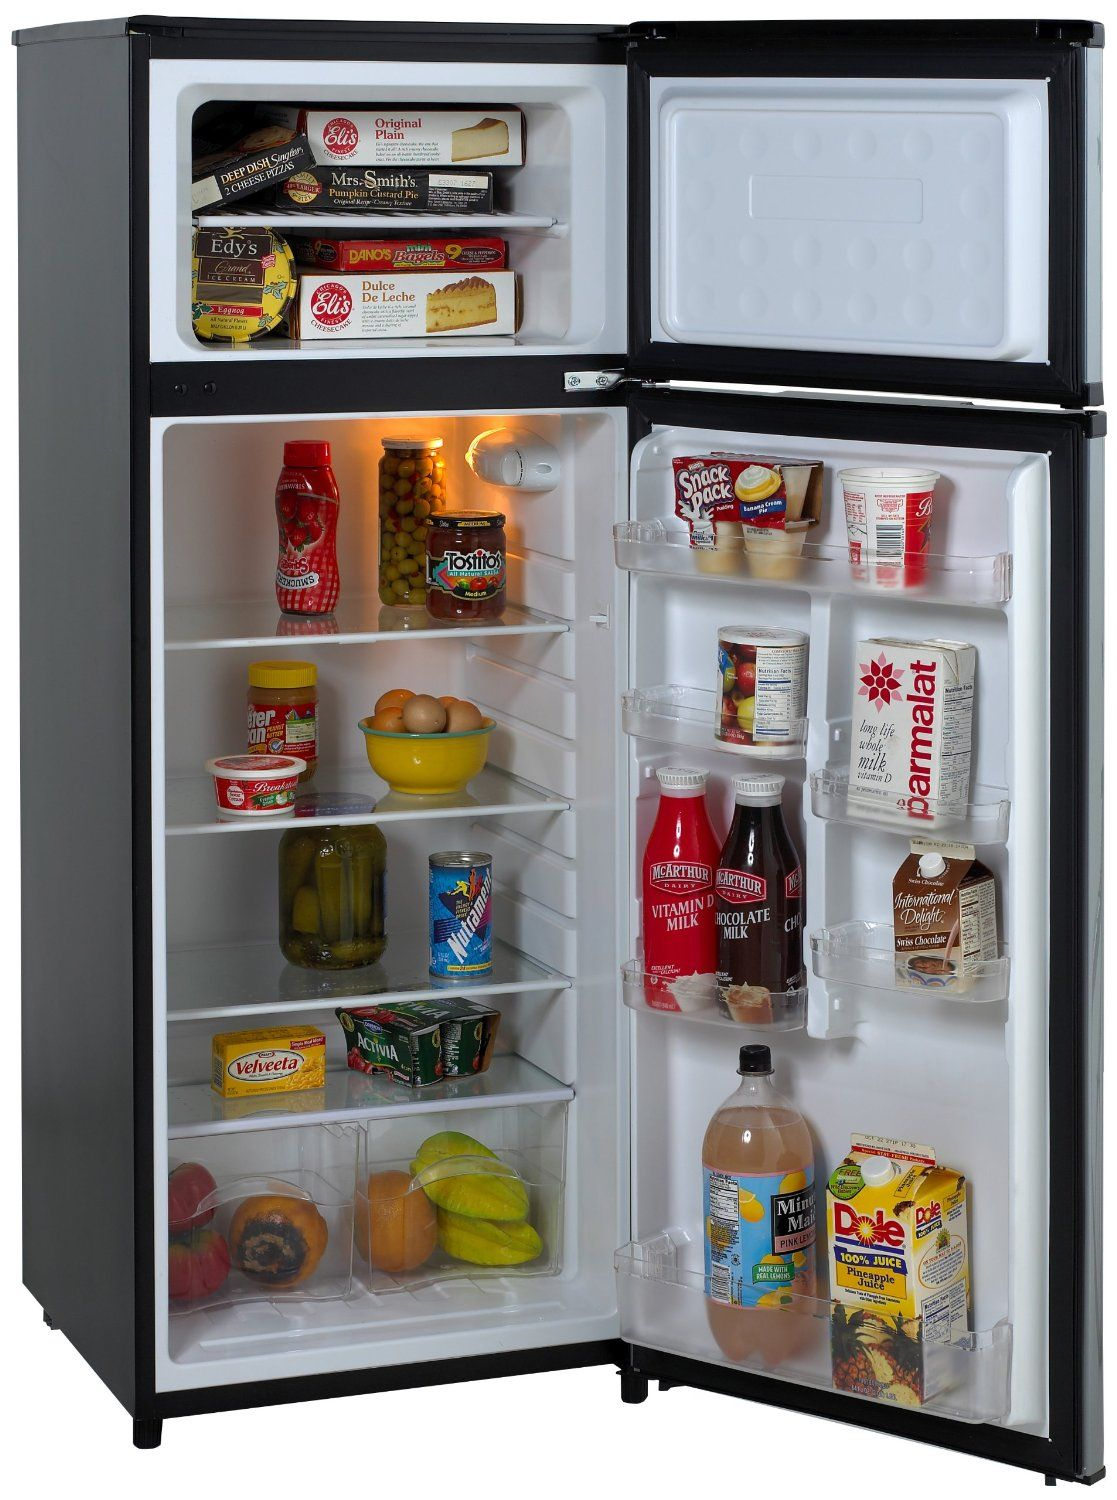 What Is A So Called Midsized Refrigerator These Are The Measurements 6 10 Cubic Feet 30 60 High 18 20 Wide And Deep